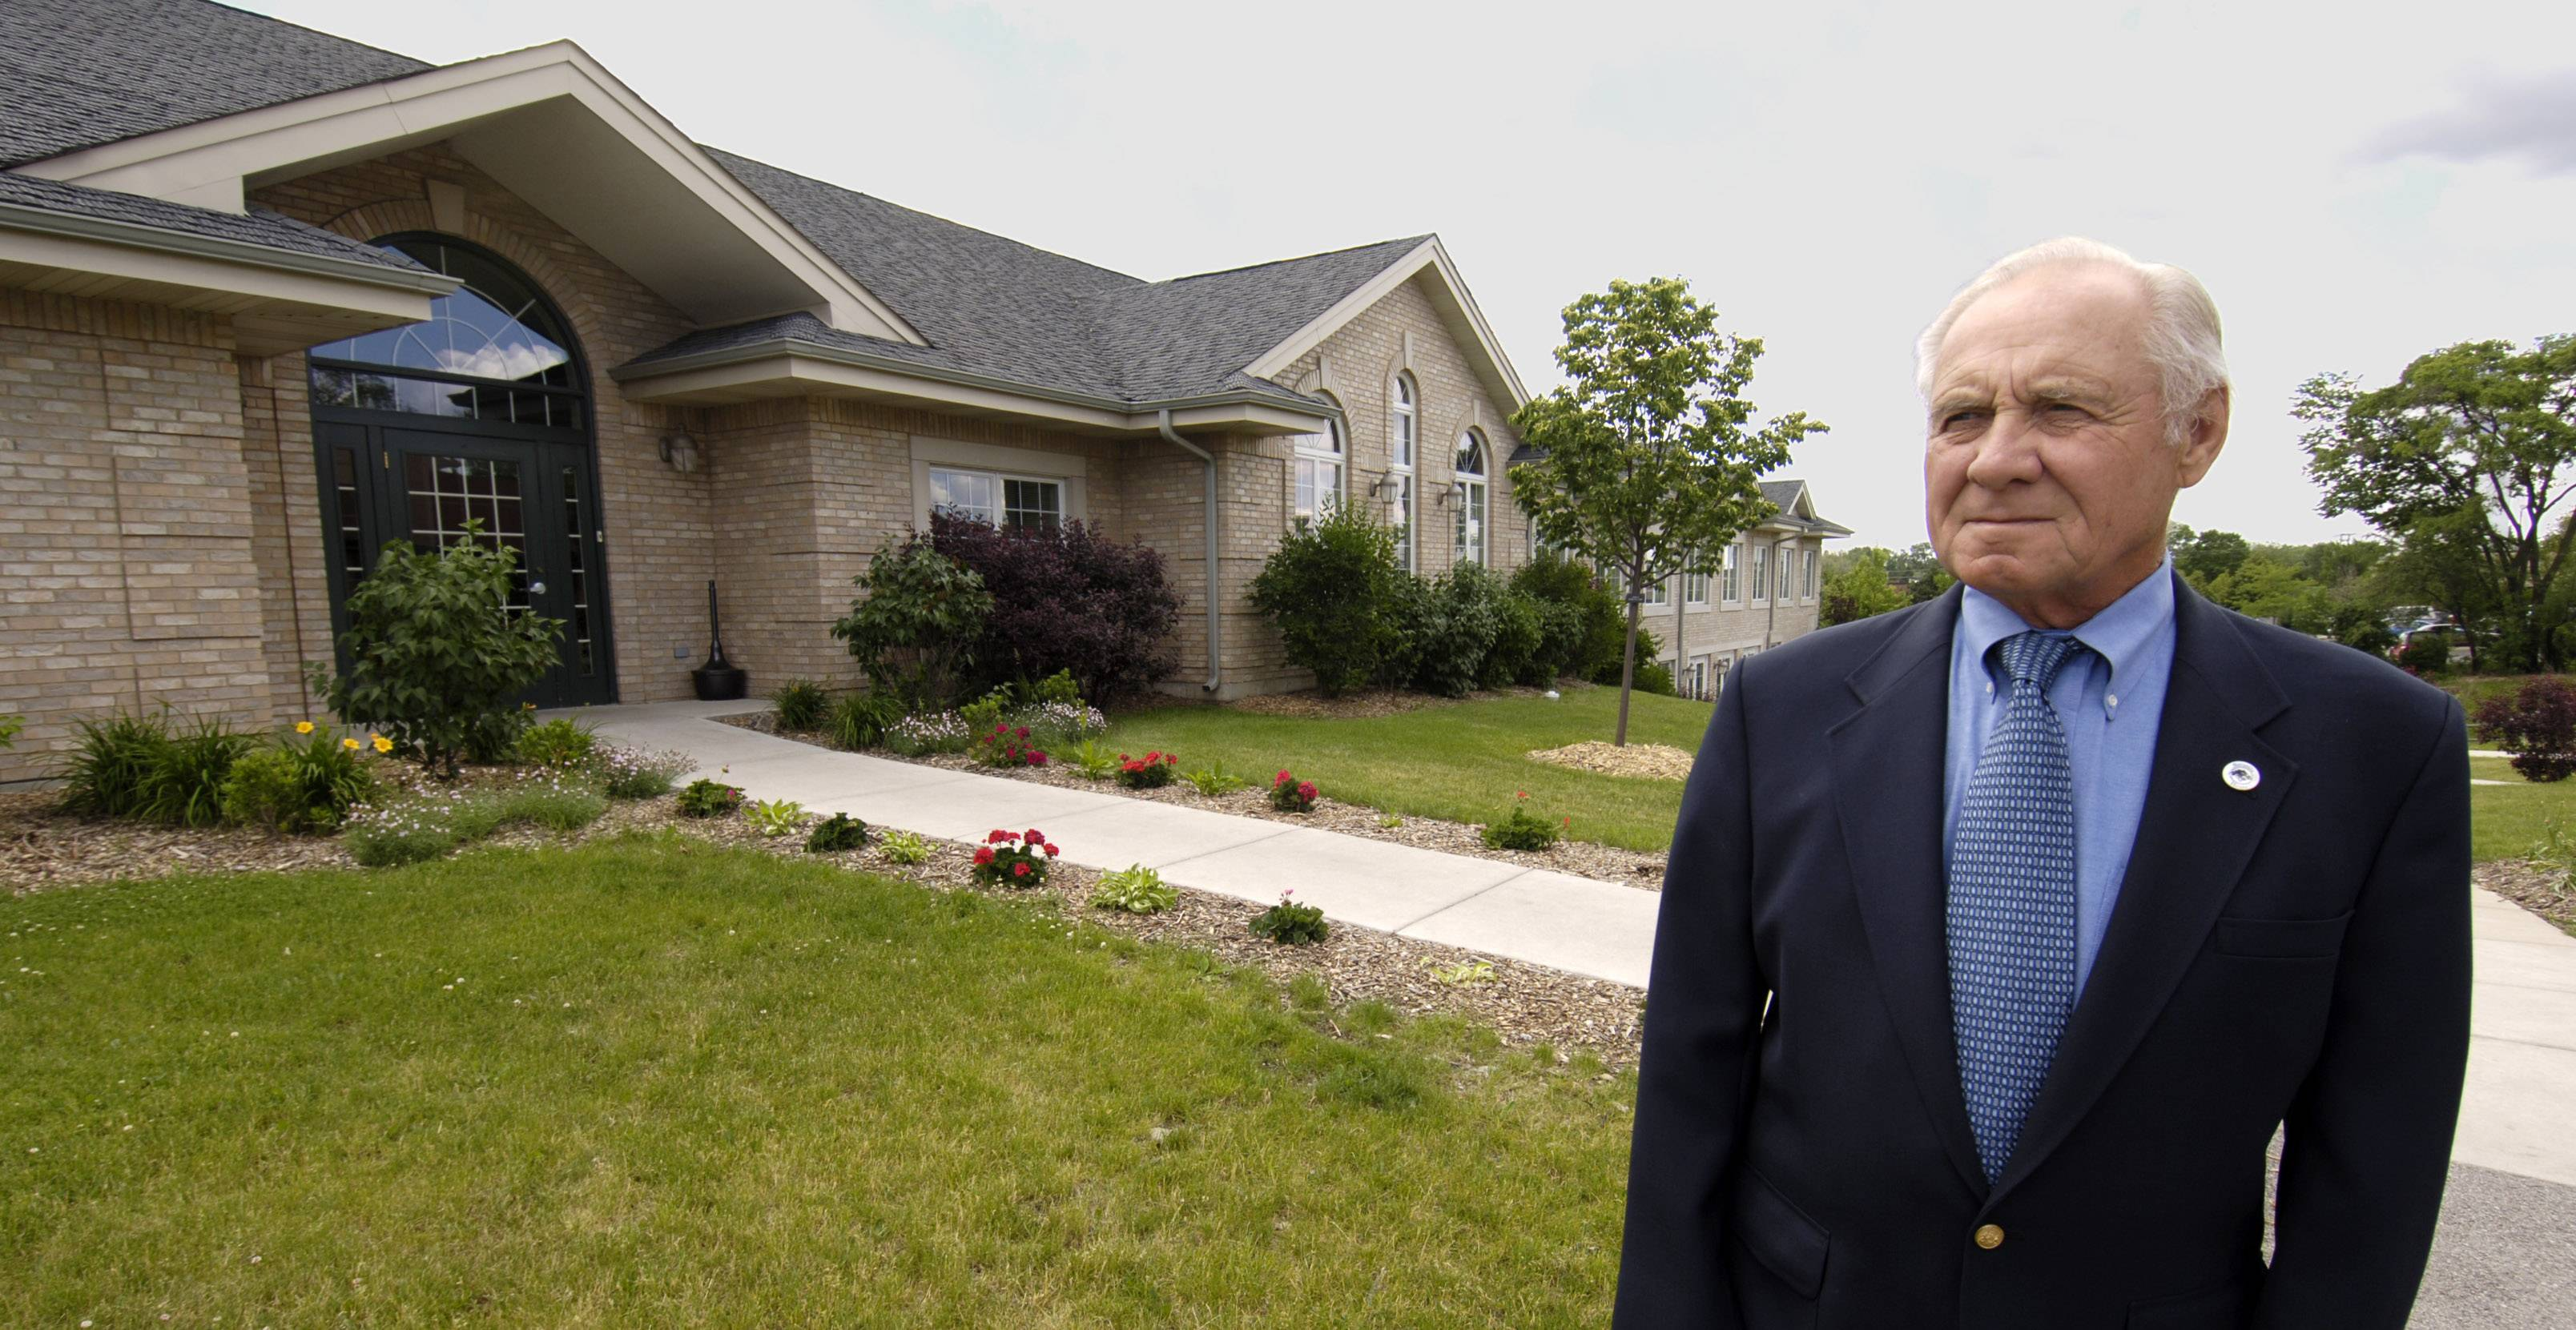 DuPage addiction recovery center founder 'never stopped fighting'